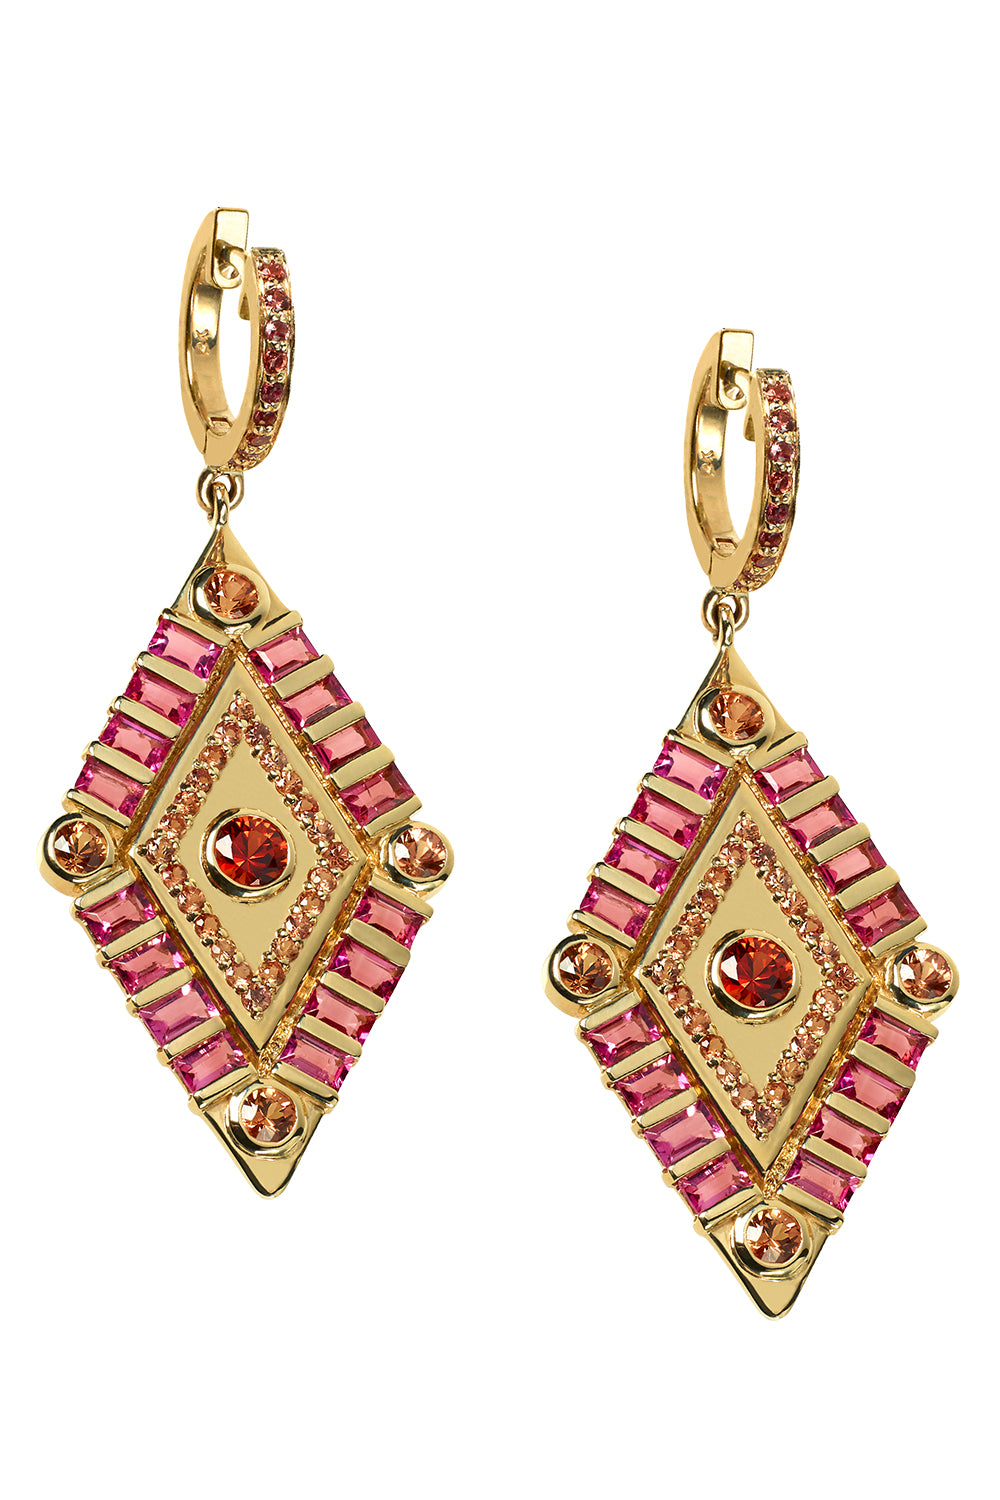 Shaman's Eye Earrings in 14K Yellow Gold, Pink Tourmaline & Pink Sapphires